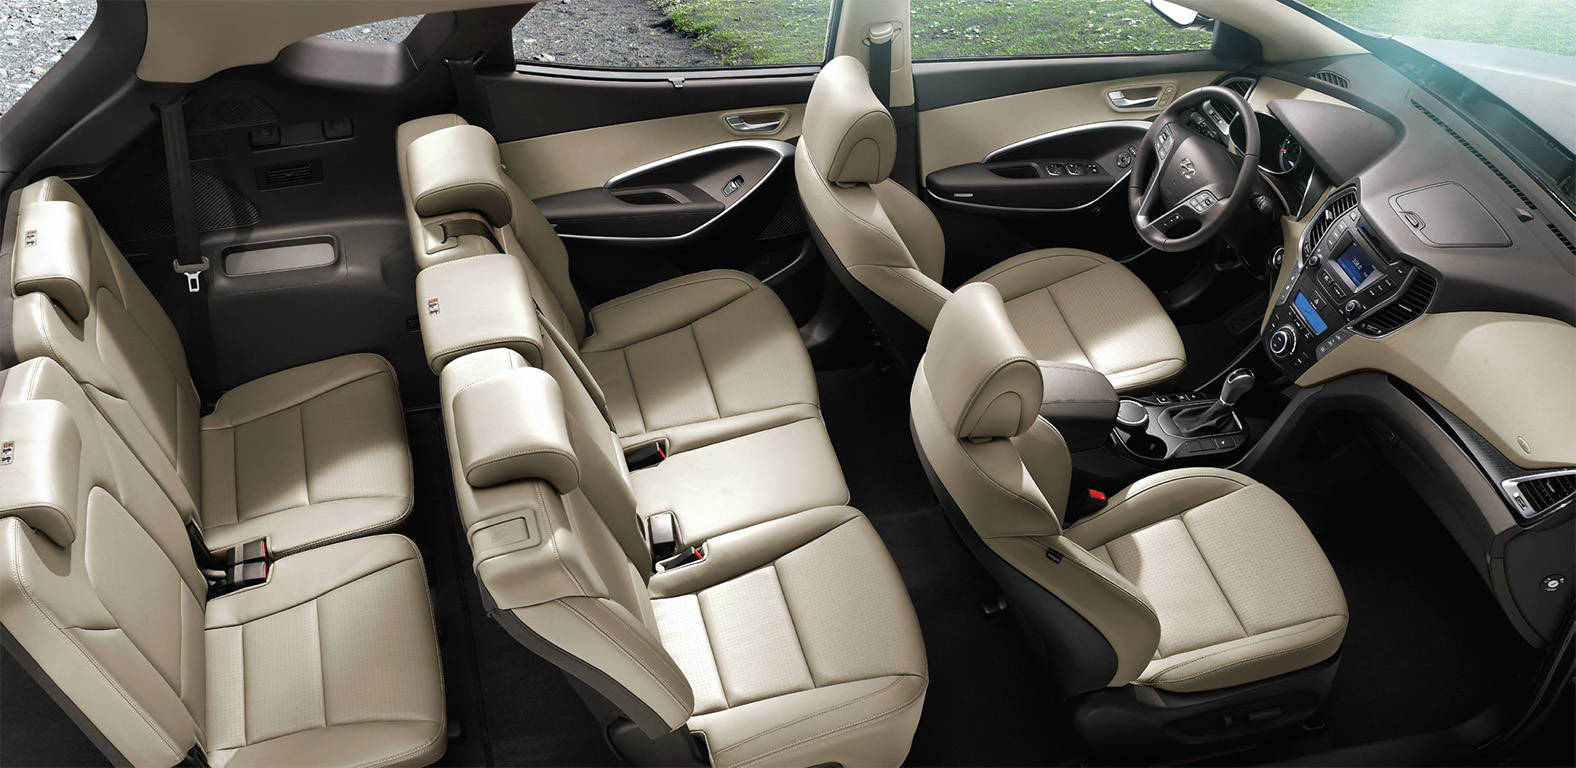 2013 Hyundai Santa Fe Interior 3rd Row Seats. U201c Good Ideas